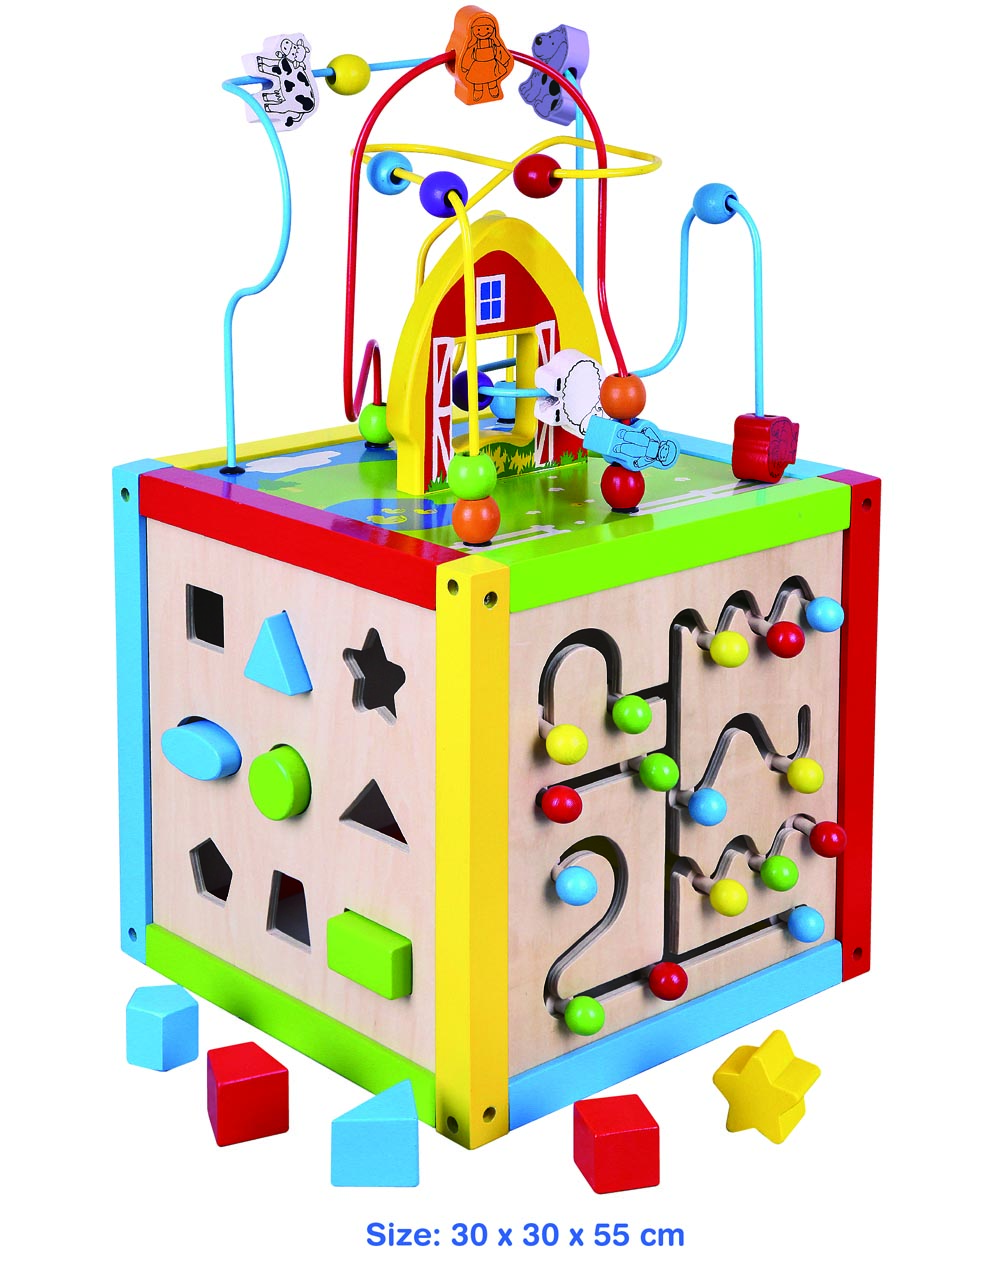 Viga Toys Childrens 5 In 1 Wooden Toy Activity Cube Bead Maze